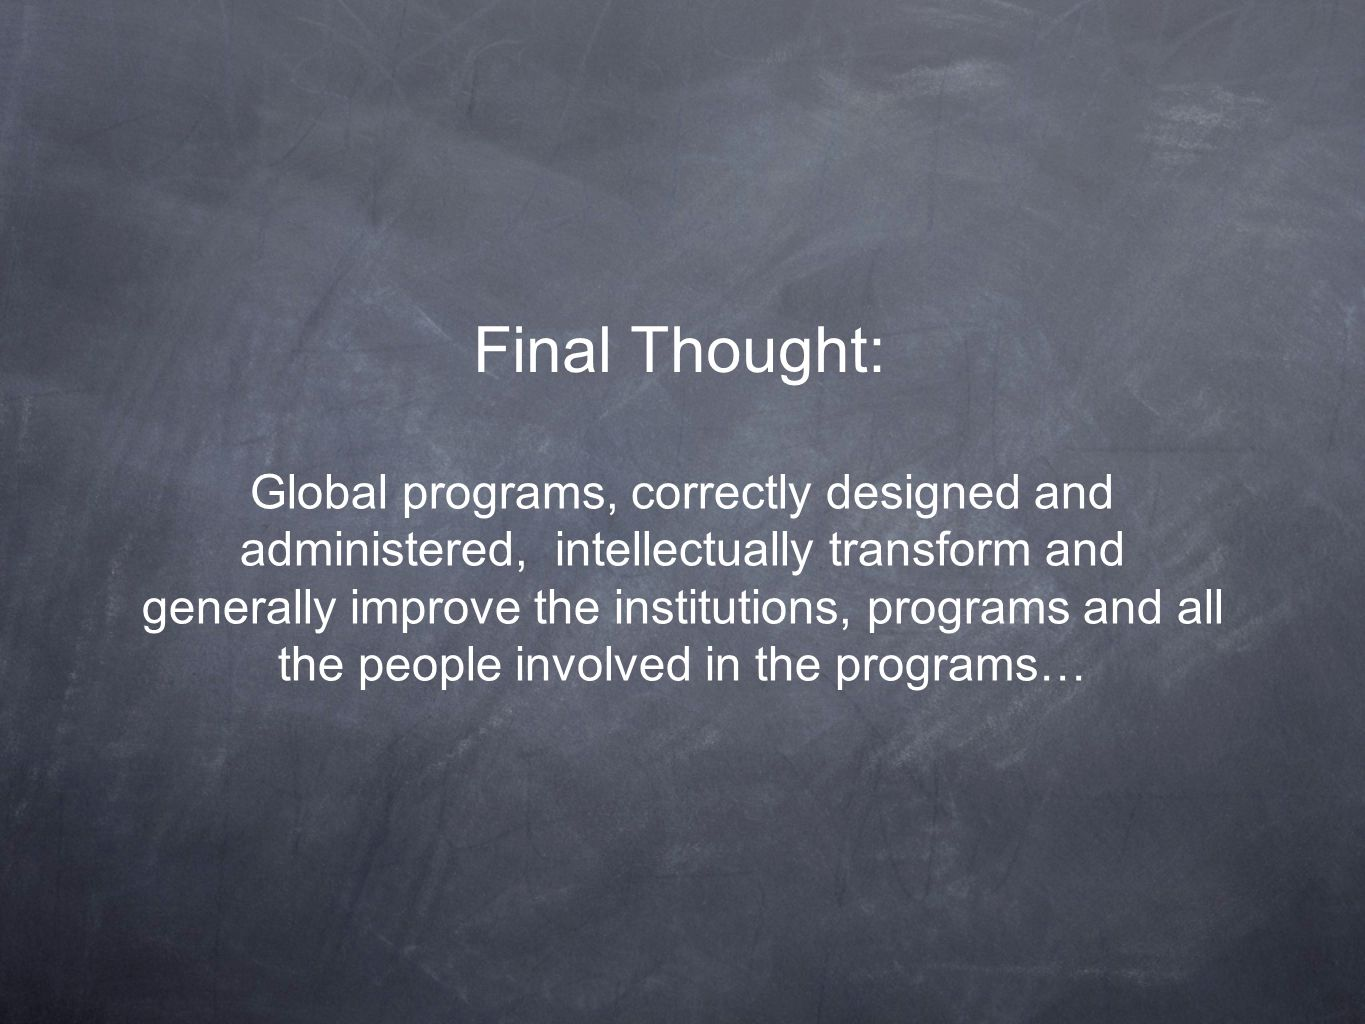 Final Thought: Global programs, correctly designed and administered, intellectually transform and generally improve the institutions, programs and all the people involved in the programs…